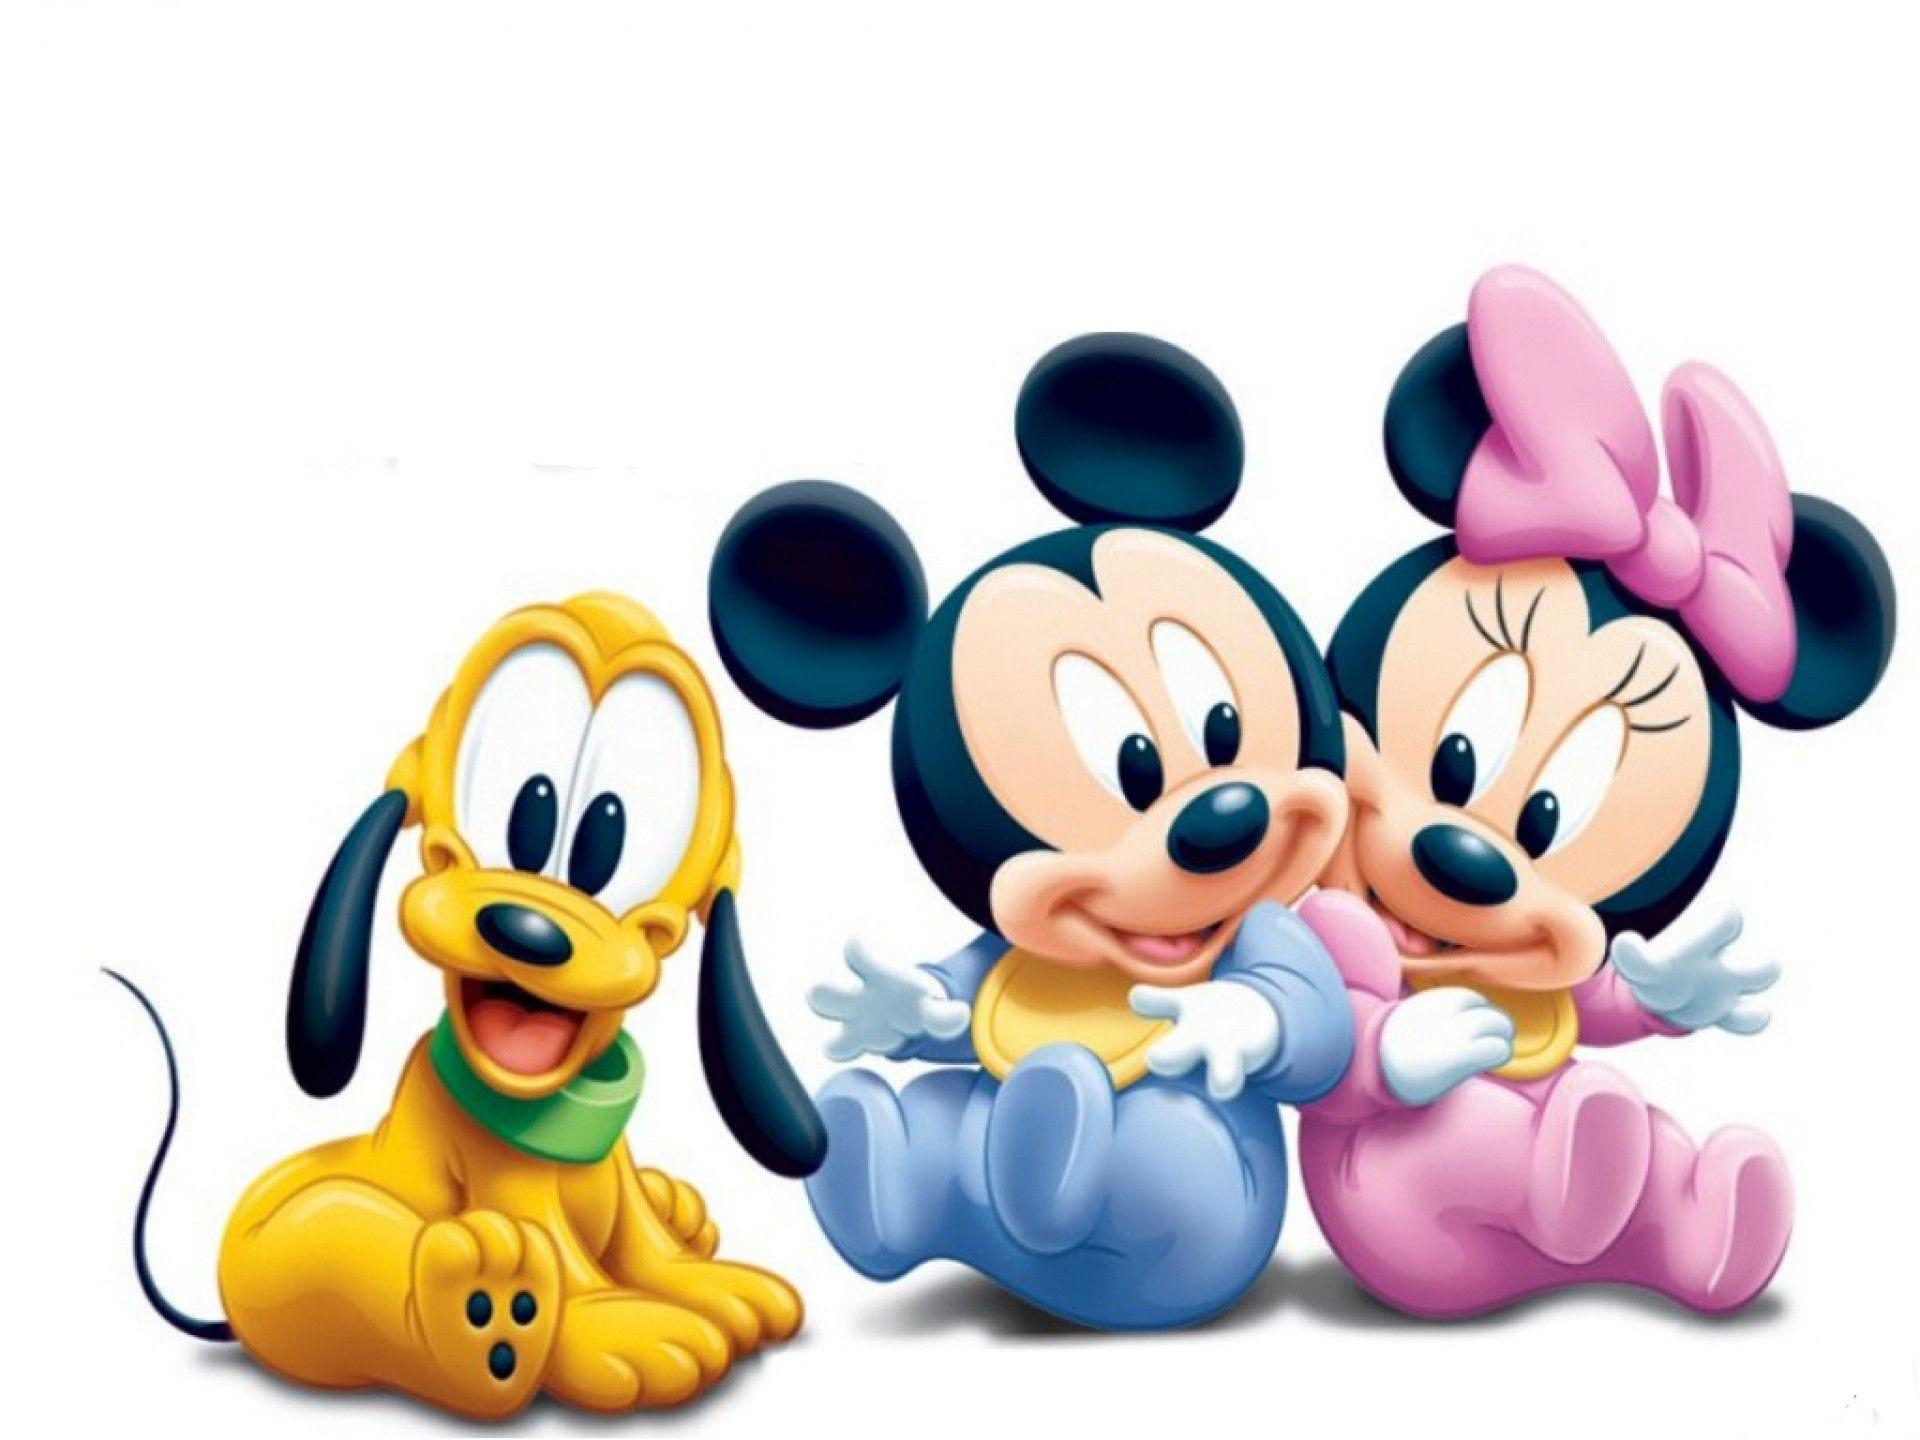 Baby Mickey Mouse, Goofy And Minnie Mouse Cartoon Wallpaper #1747 .